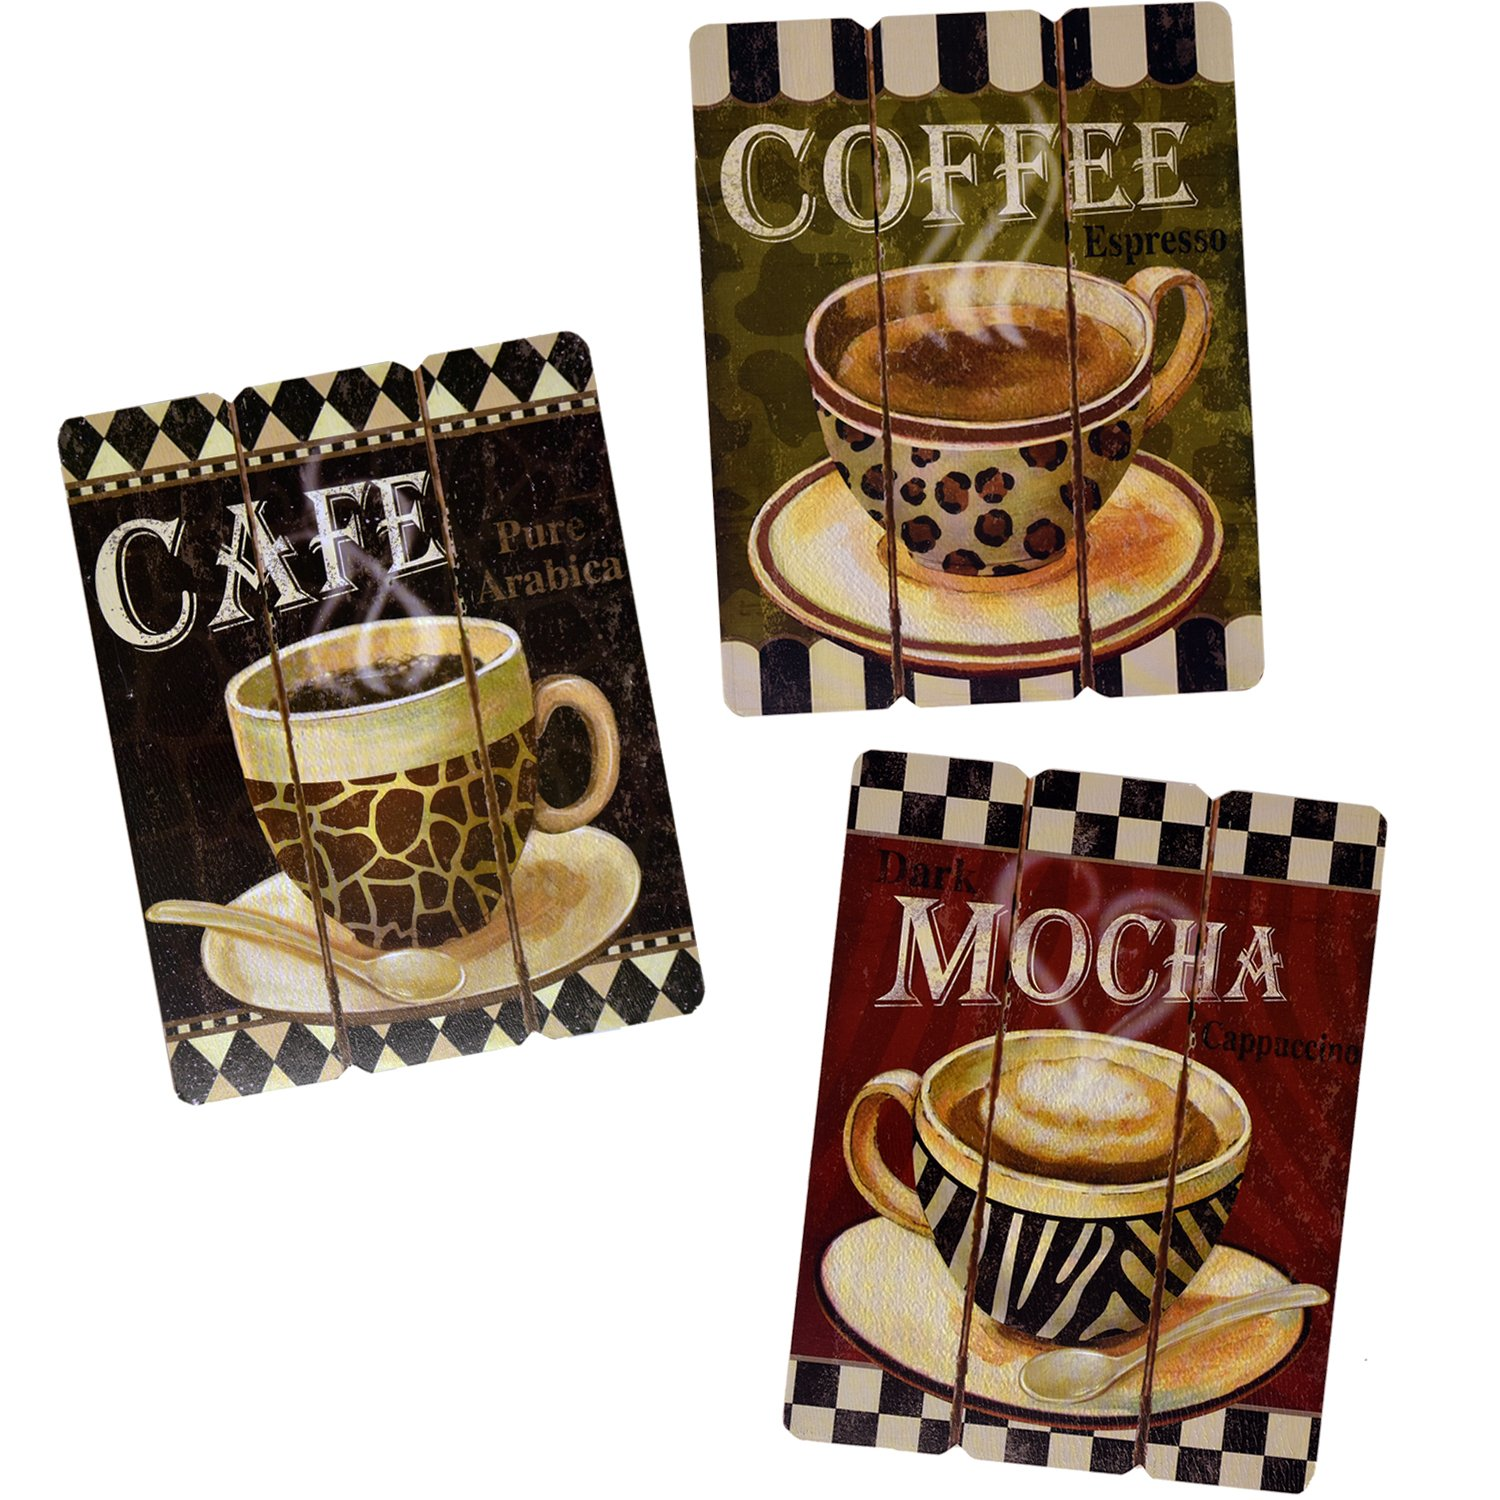 Is one of my personal favorite Most Popular Cute Coffee Themed Kitchen Decorations https://www.amazon.com/Hanging-Paintings-Bedroom-Kitchen-Accessories/dp/B015RXA3LU?ref_=fsclp_pl_dp_2